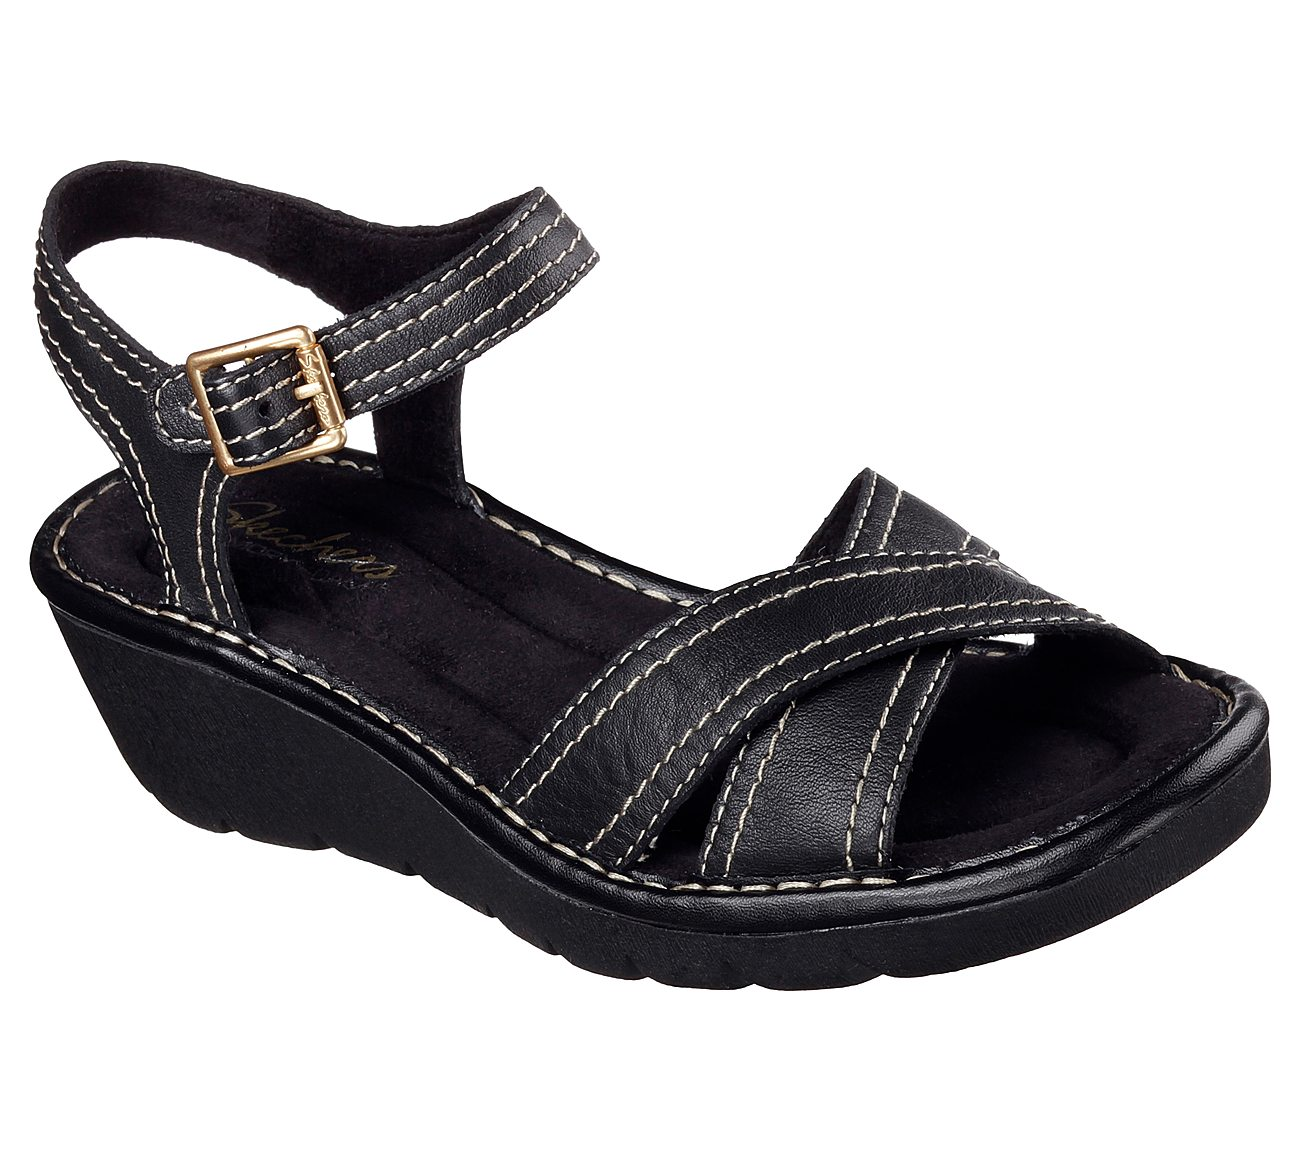 0ac5ff8ebf41 Buy SKECHERS Cameo - Faceted Slide Sandals Shoes only  63.00